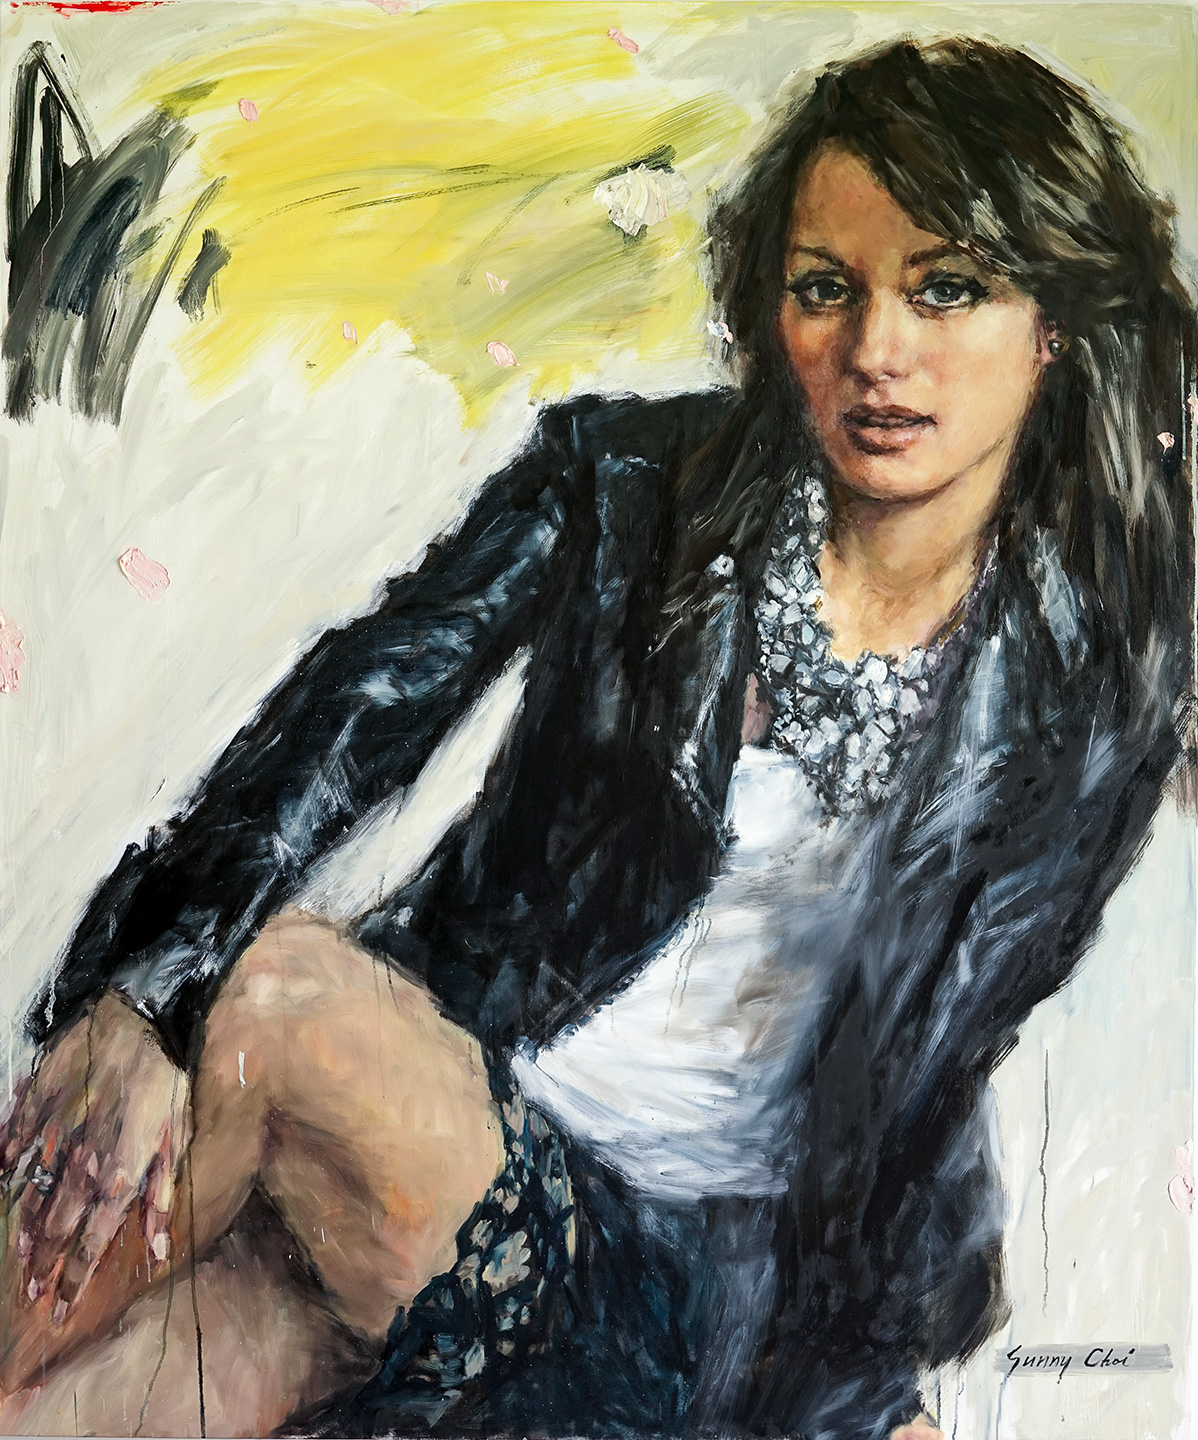 Sitting Pretty - 60 x 72 inches, Oil and Acrylic on Canvas